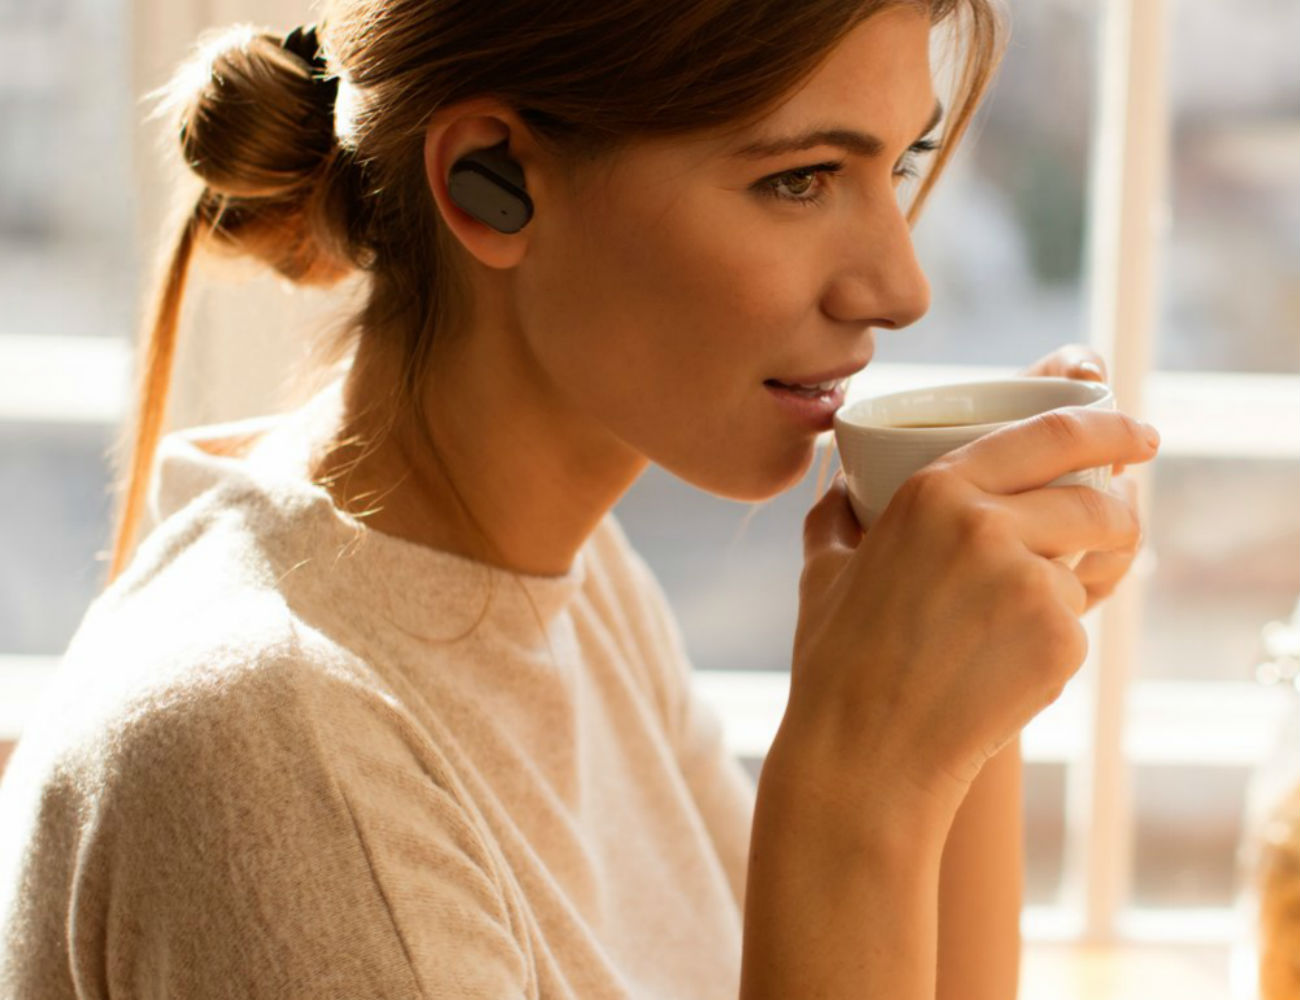 Sony Xperia Ear Intelligent Bluetooth Headset